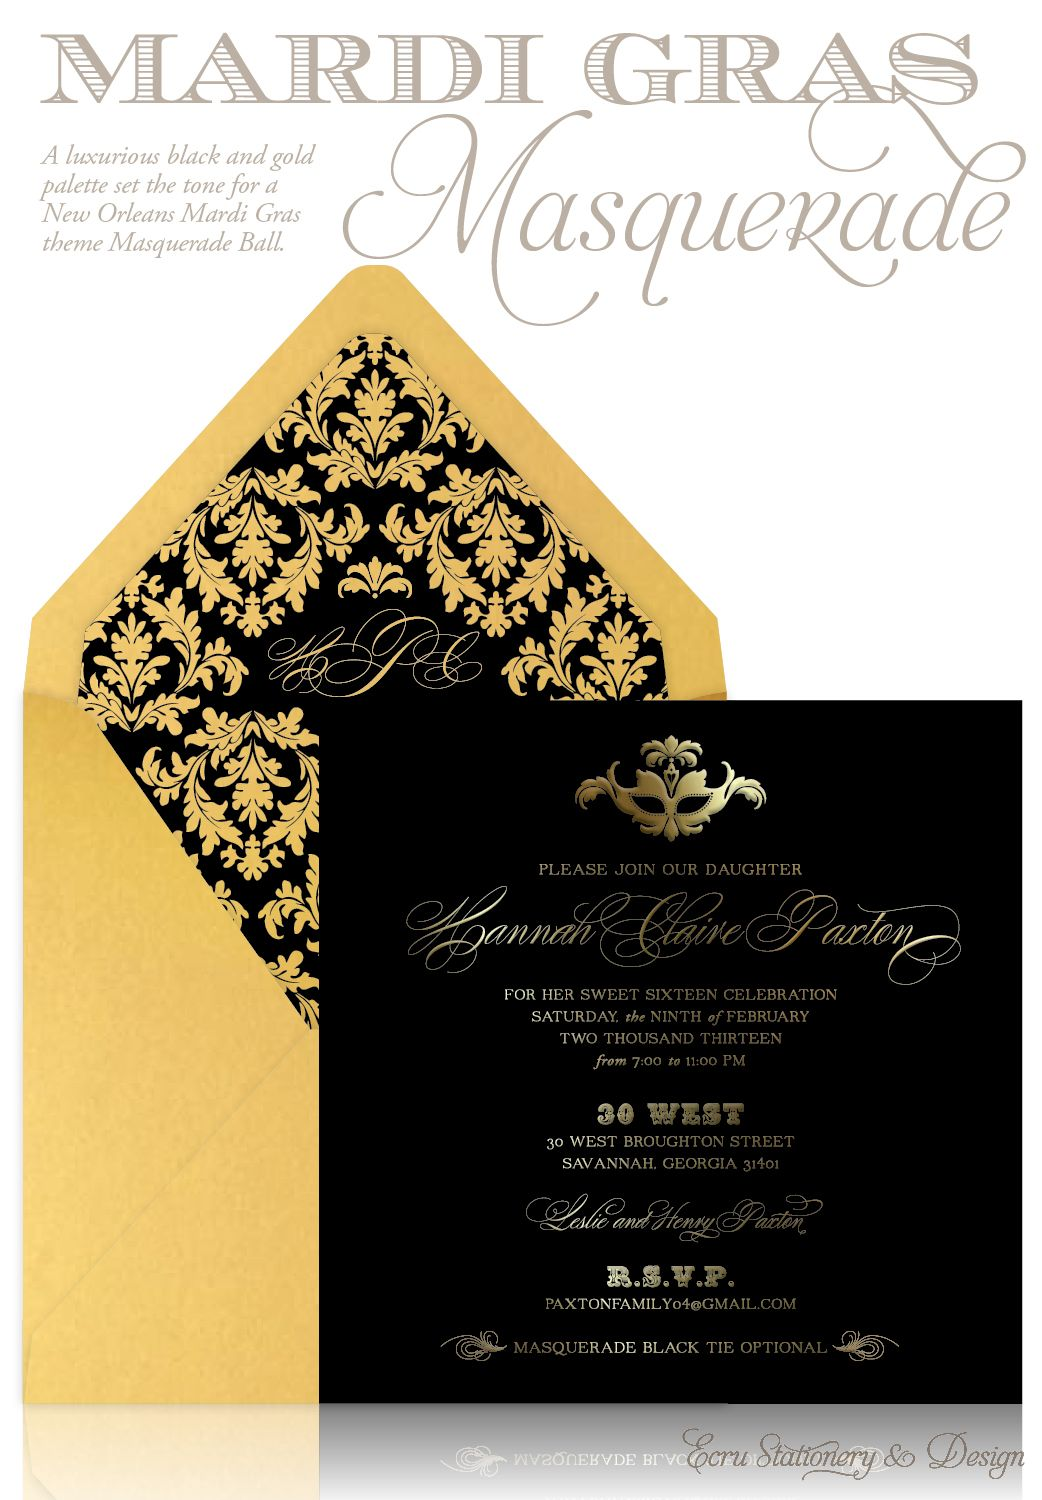 custom black and gold masquerade party sweet 16 invitation by ecru